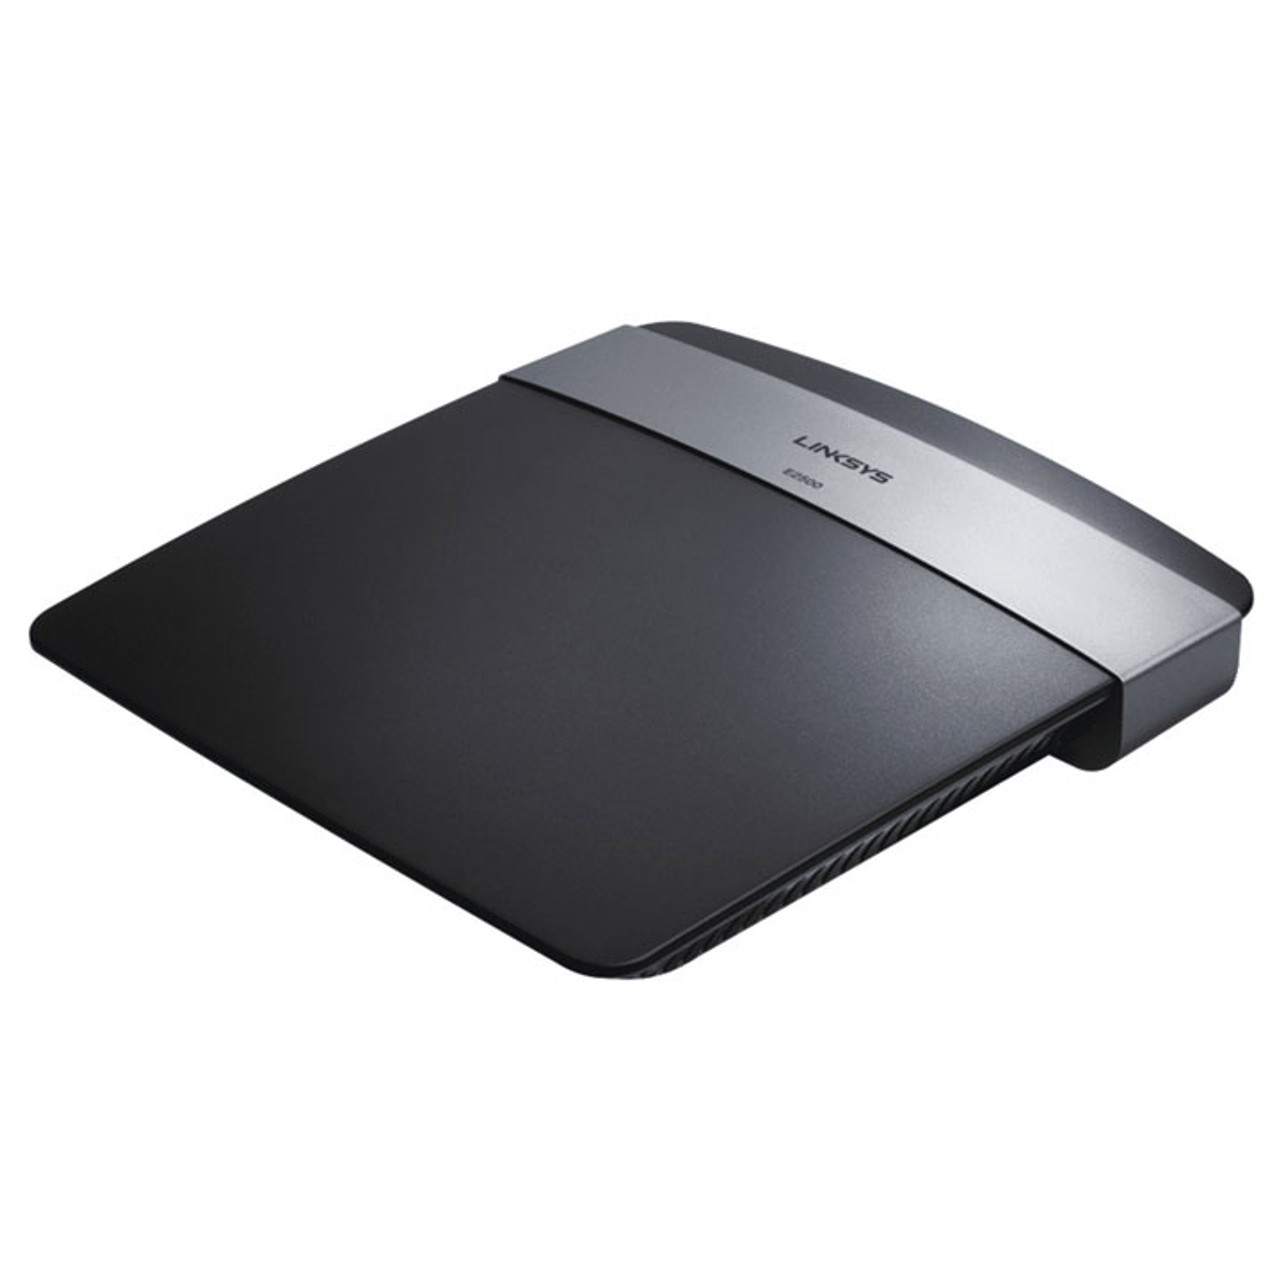 Linksys e2500 high speed vpn router at an amazing price linksys e2500 vpn router keyboard keysfo Choice Image